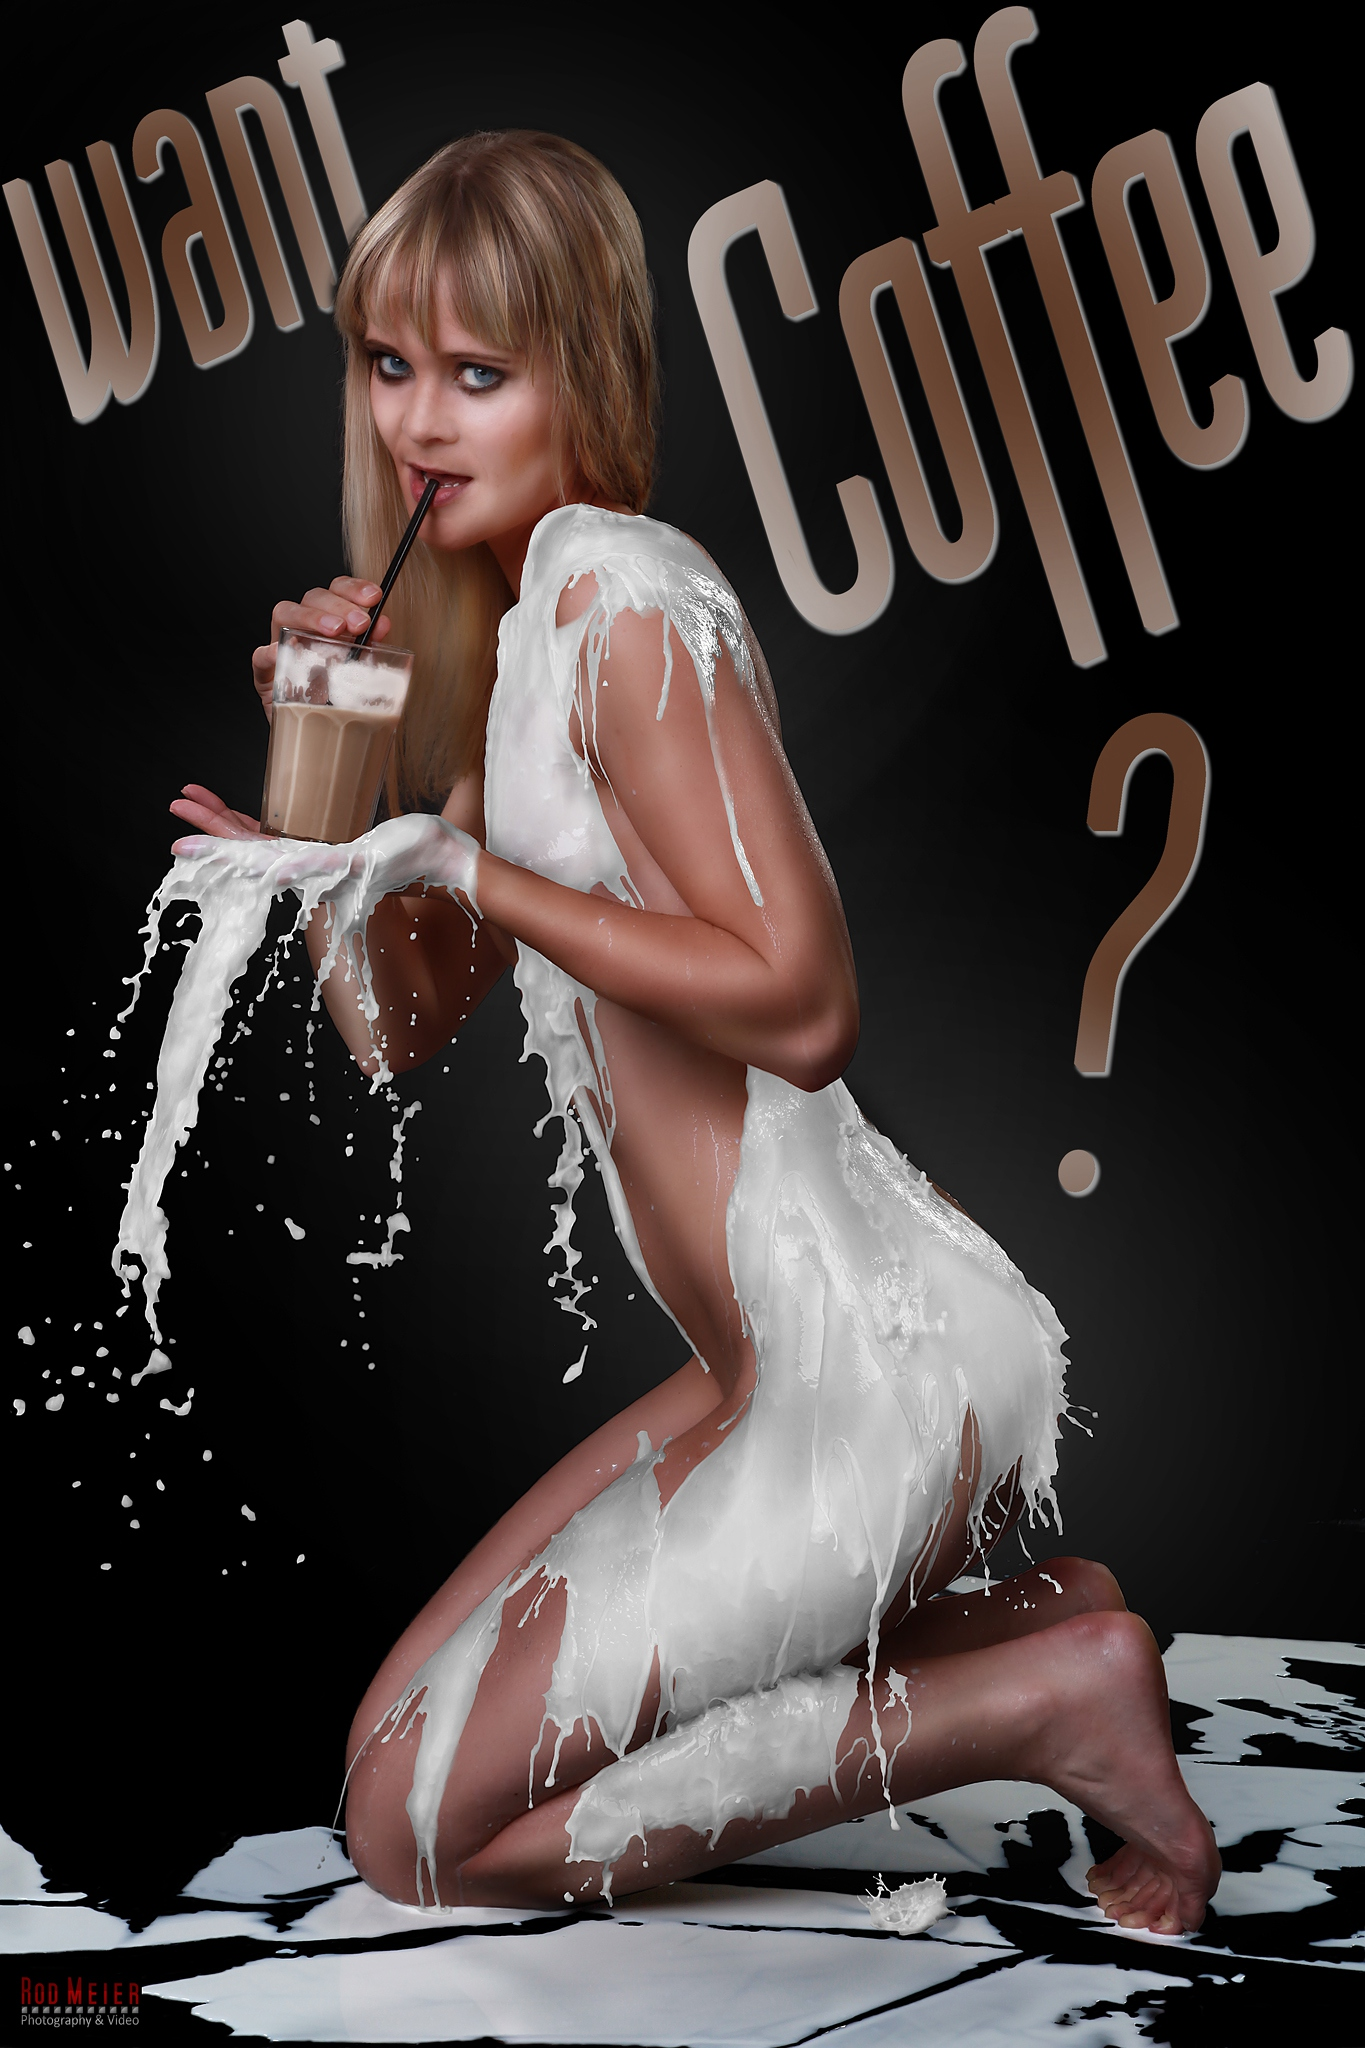 Milk Dress - Milchkleid - Want Coffee